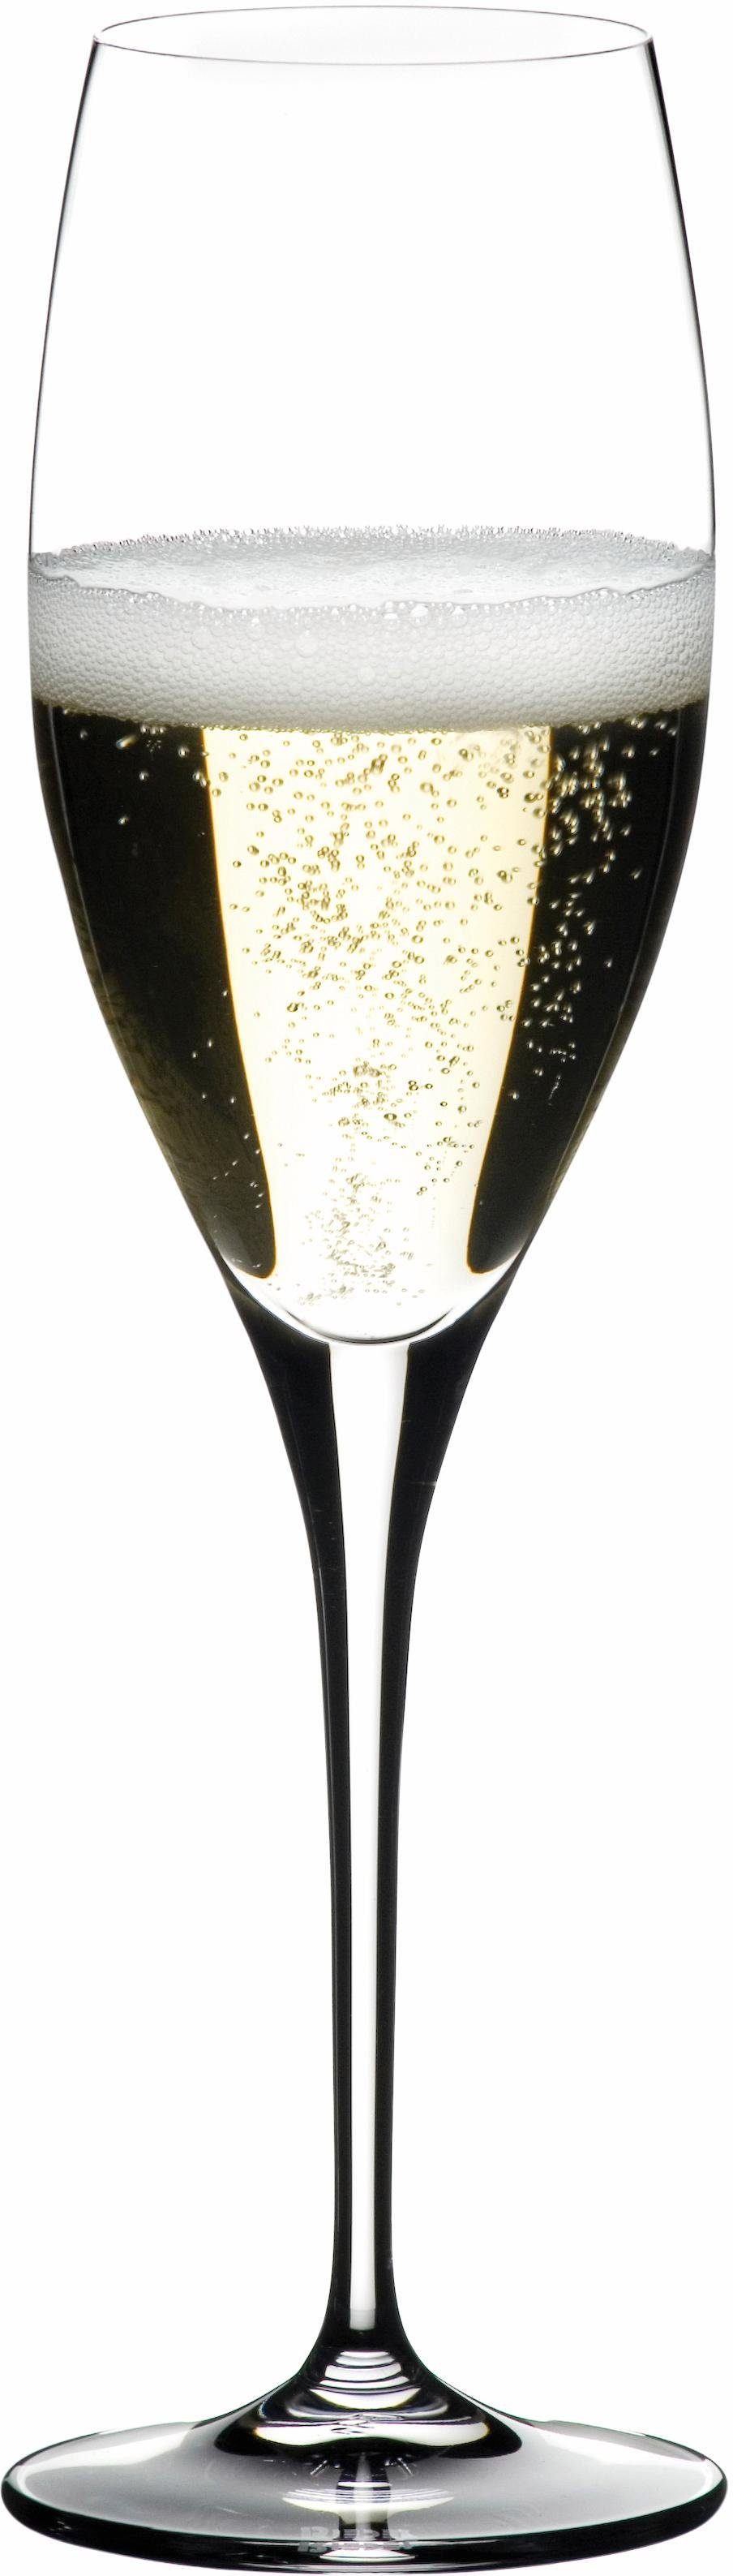 RIEDEL GLASS Champagner-Glas, 2teilig, Made in Germany, »Heart to Heart«